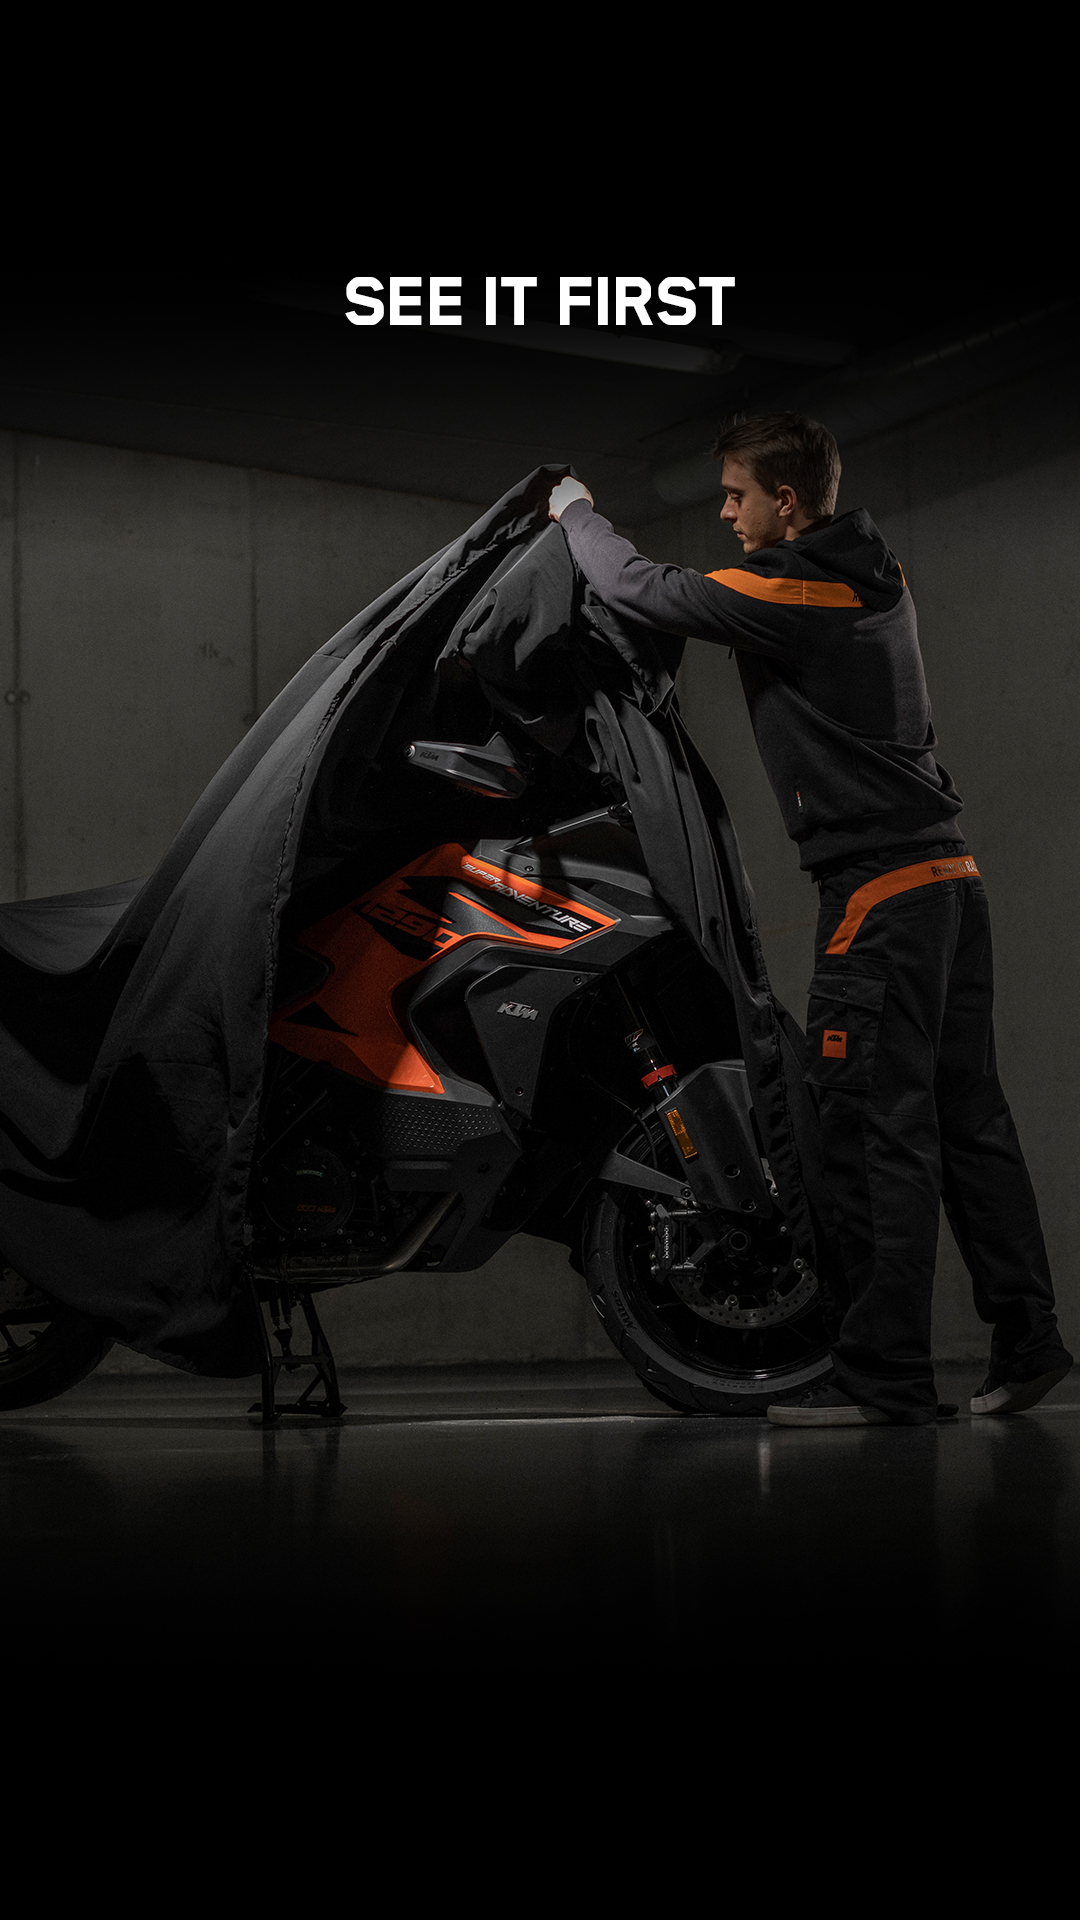 UNBOXED BIJ DD BIKES KTM 1290 SUPER ADVENTURE S 2021